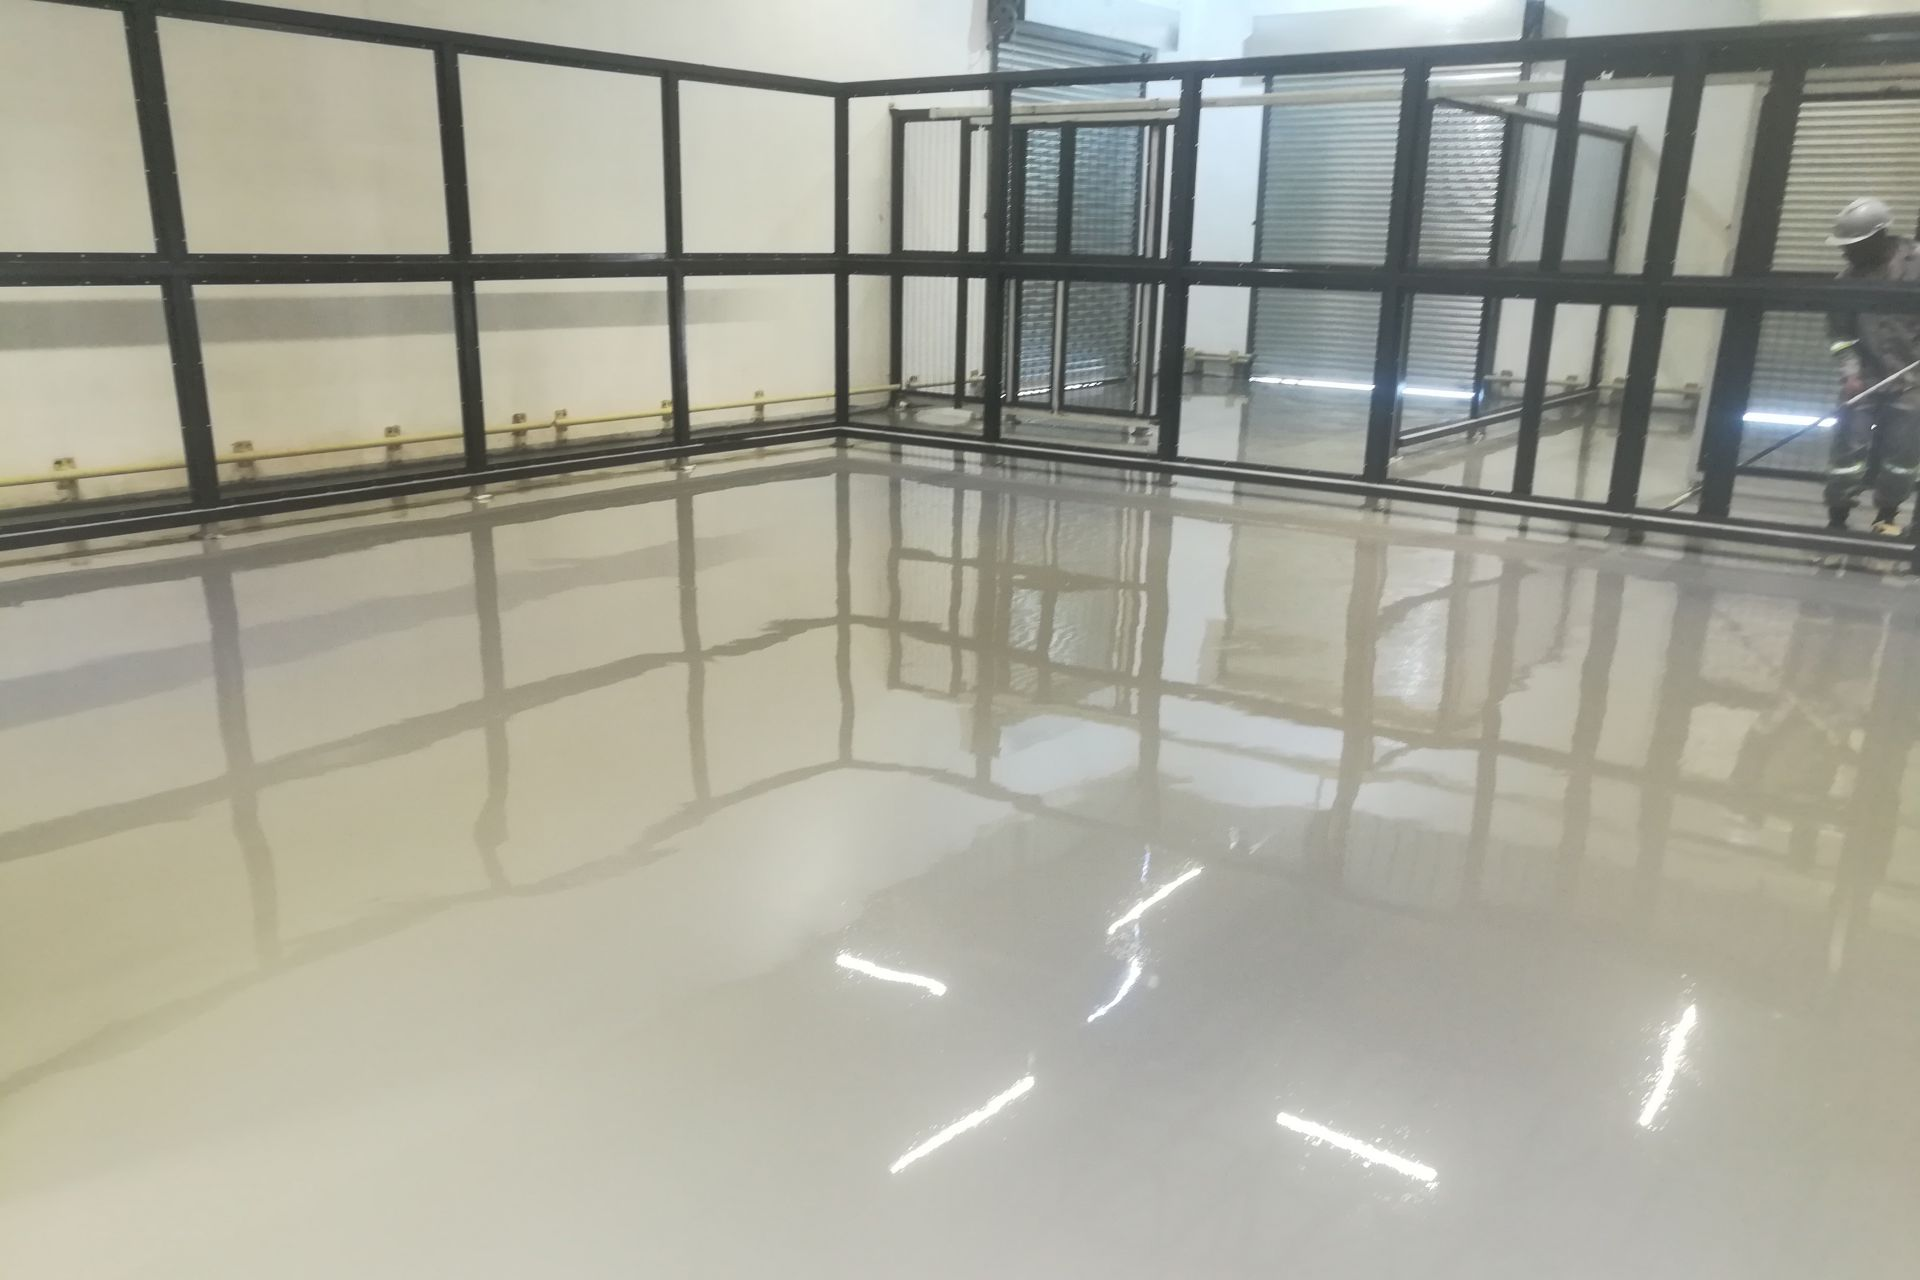 Specialised electrostatic dissipative floor, Sikafloor® 235 ESD, used as the flooring system due to the nature of their specific working environment